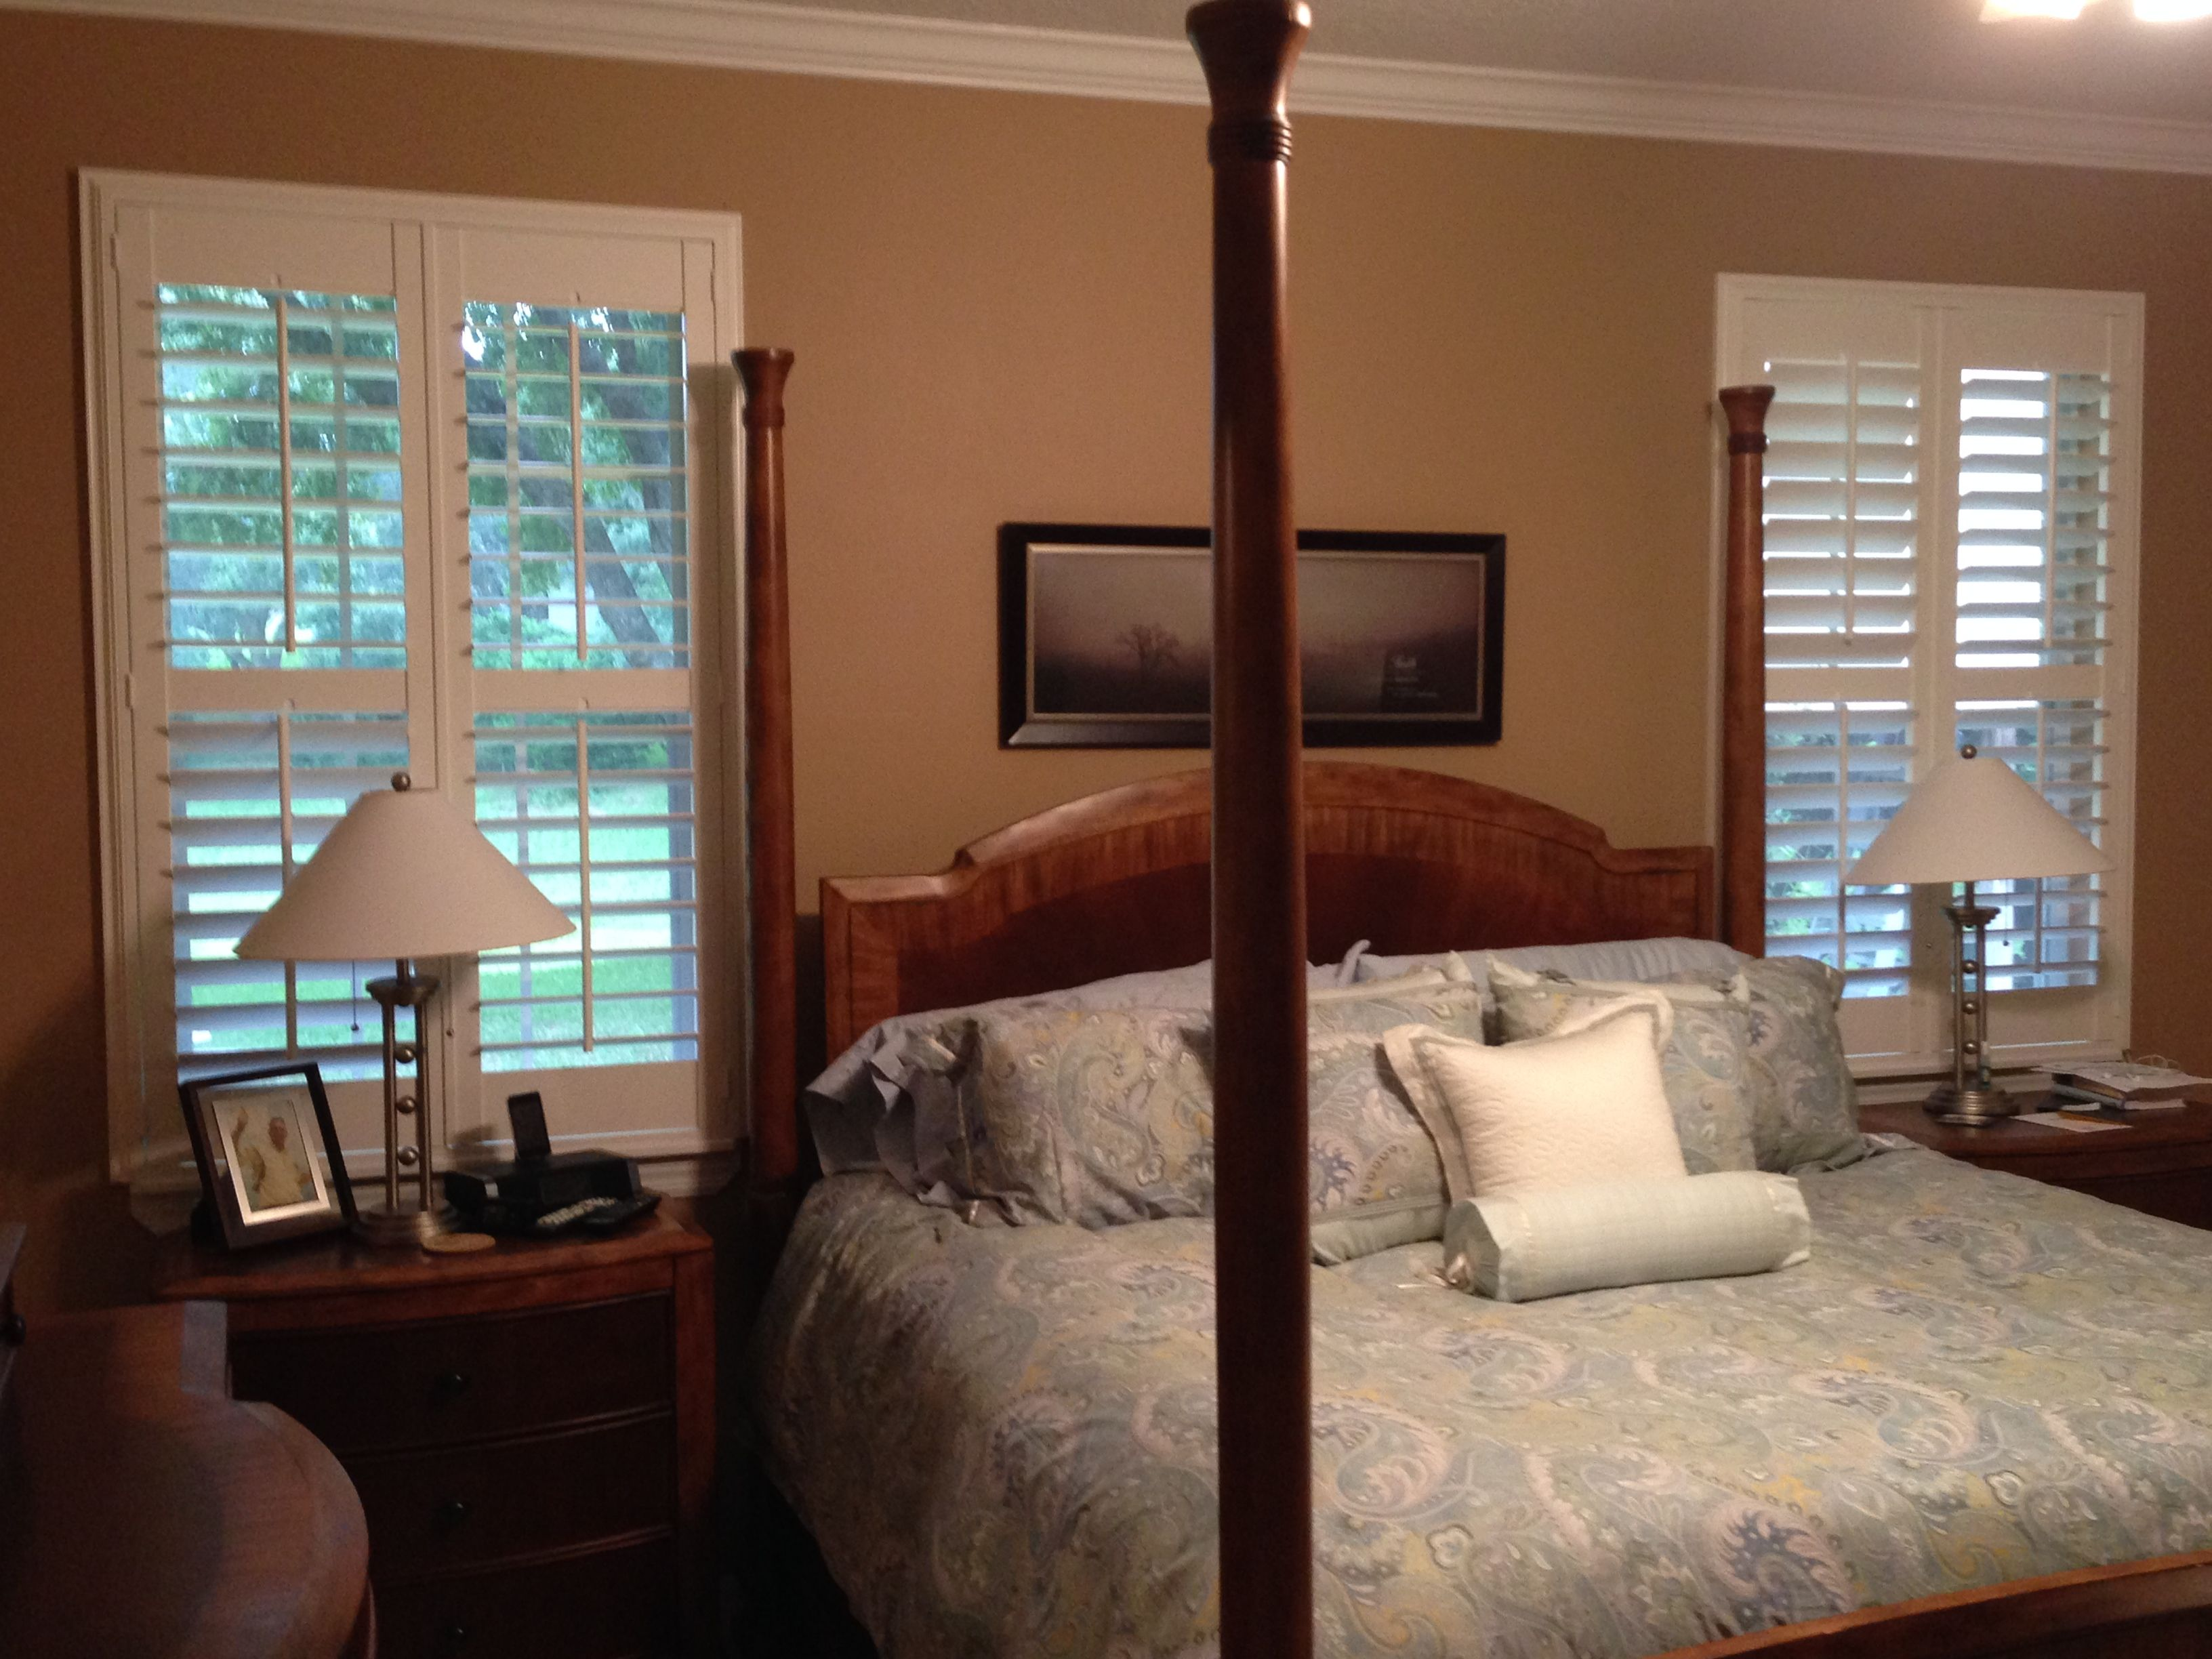 Gorgeous Plantation Shutters Dress Up This Master Bedroom. Available At  Budget Blinds Of Clermont